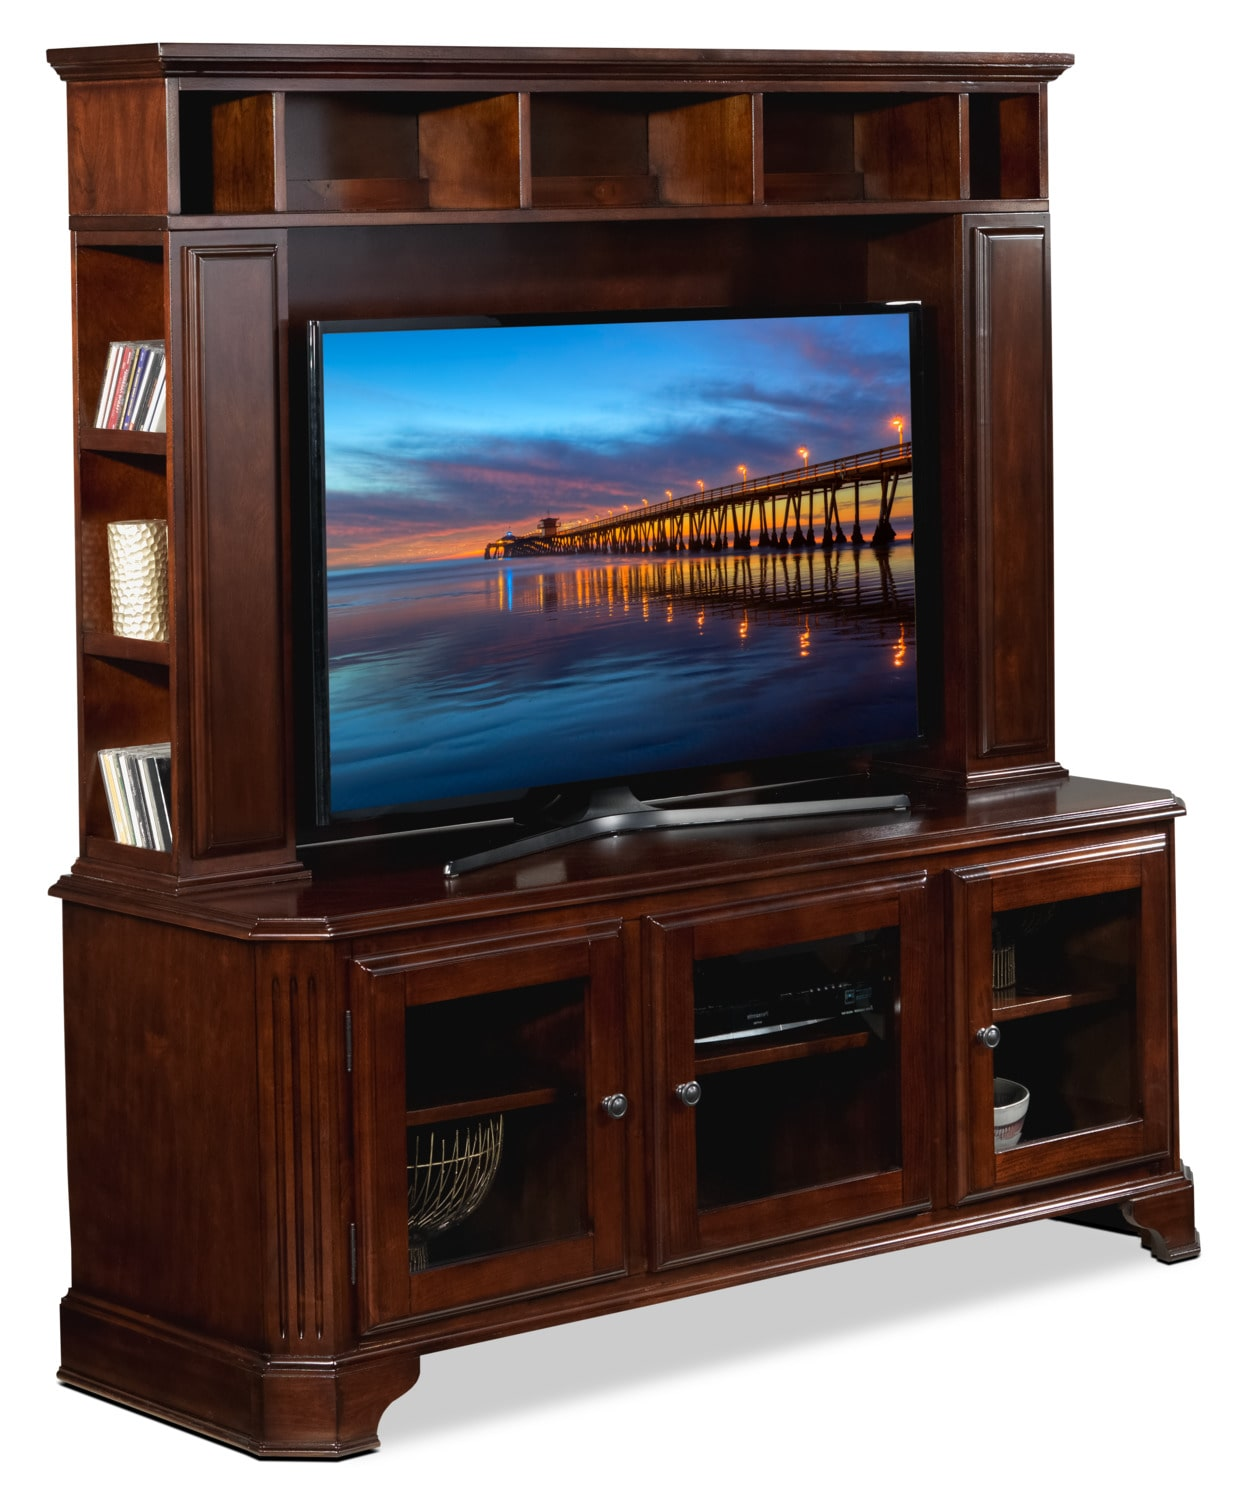 Jassy 2-Piece Entertainment Wall Unit - Brown Cherry